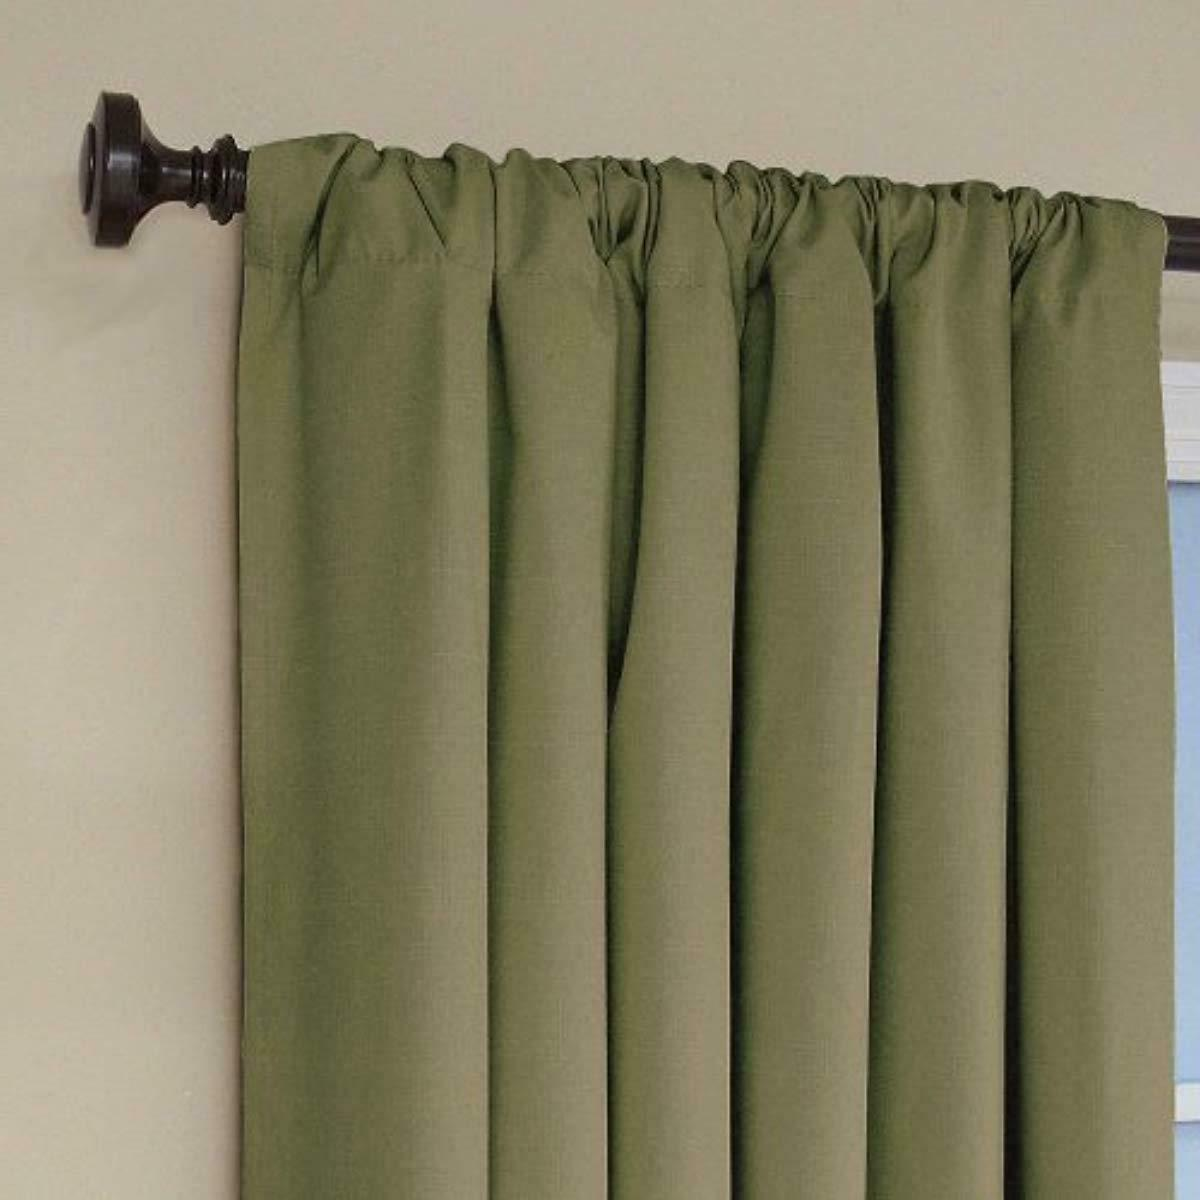 Blackout Curtains Thermal Curtain Single Panel Window 42 x Inch